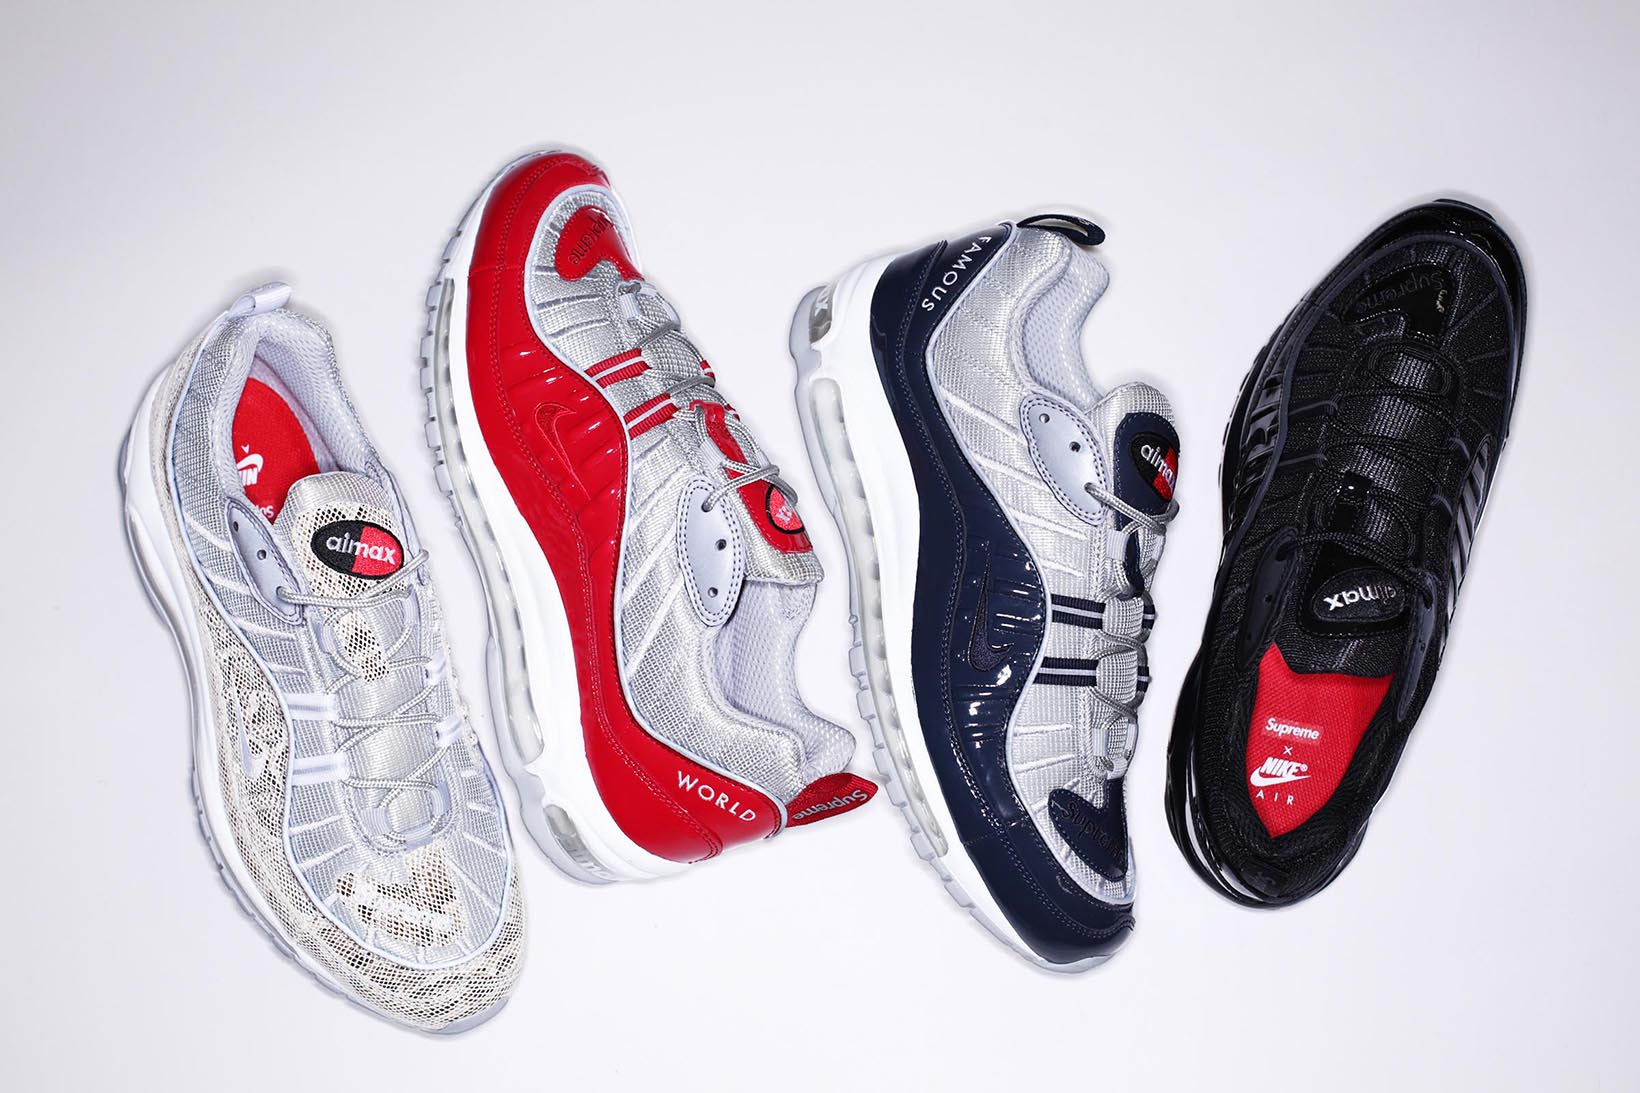 nikelab-supreme-air-max-98-01